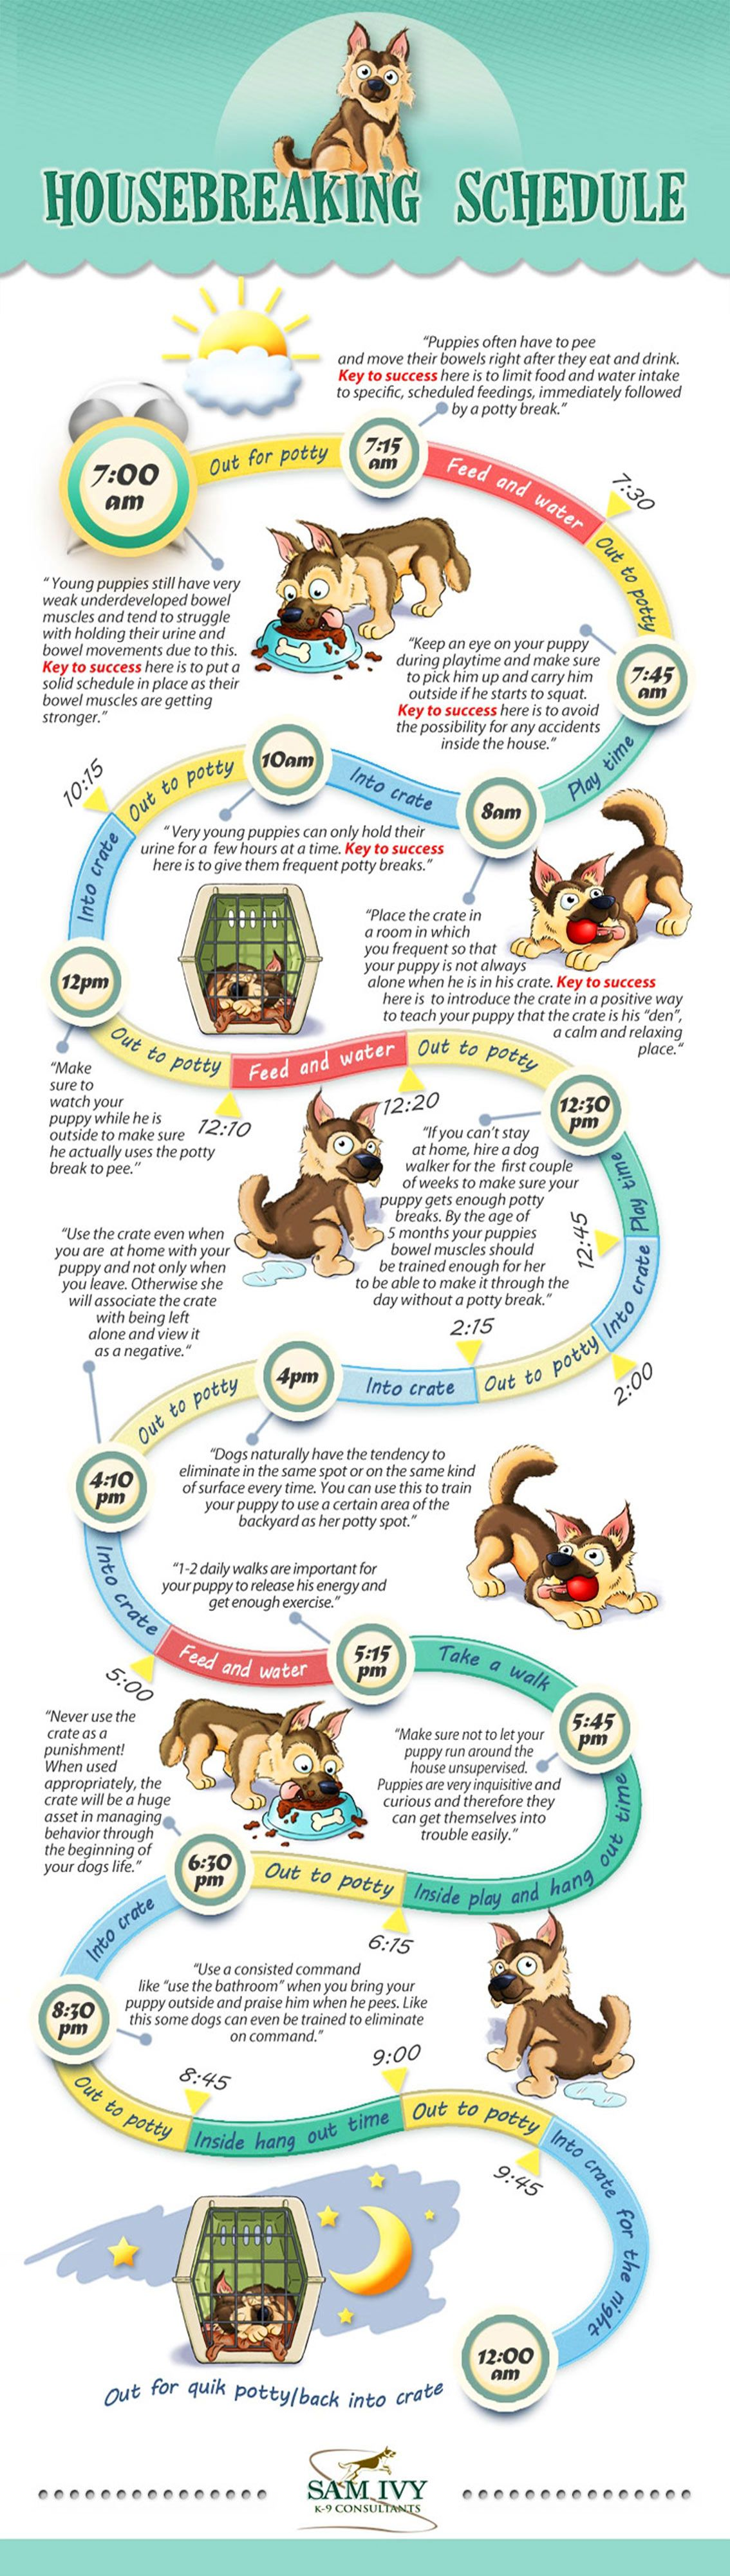 Potty Training Schedule How To Housebreak A Puppy Infographic